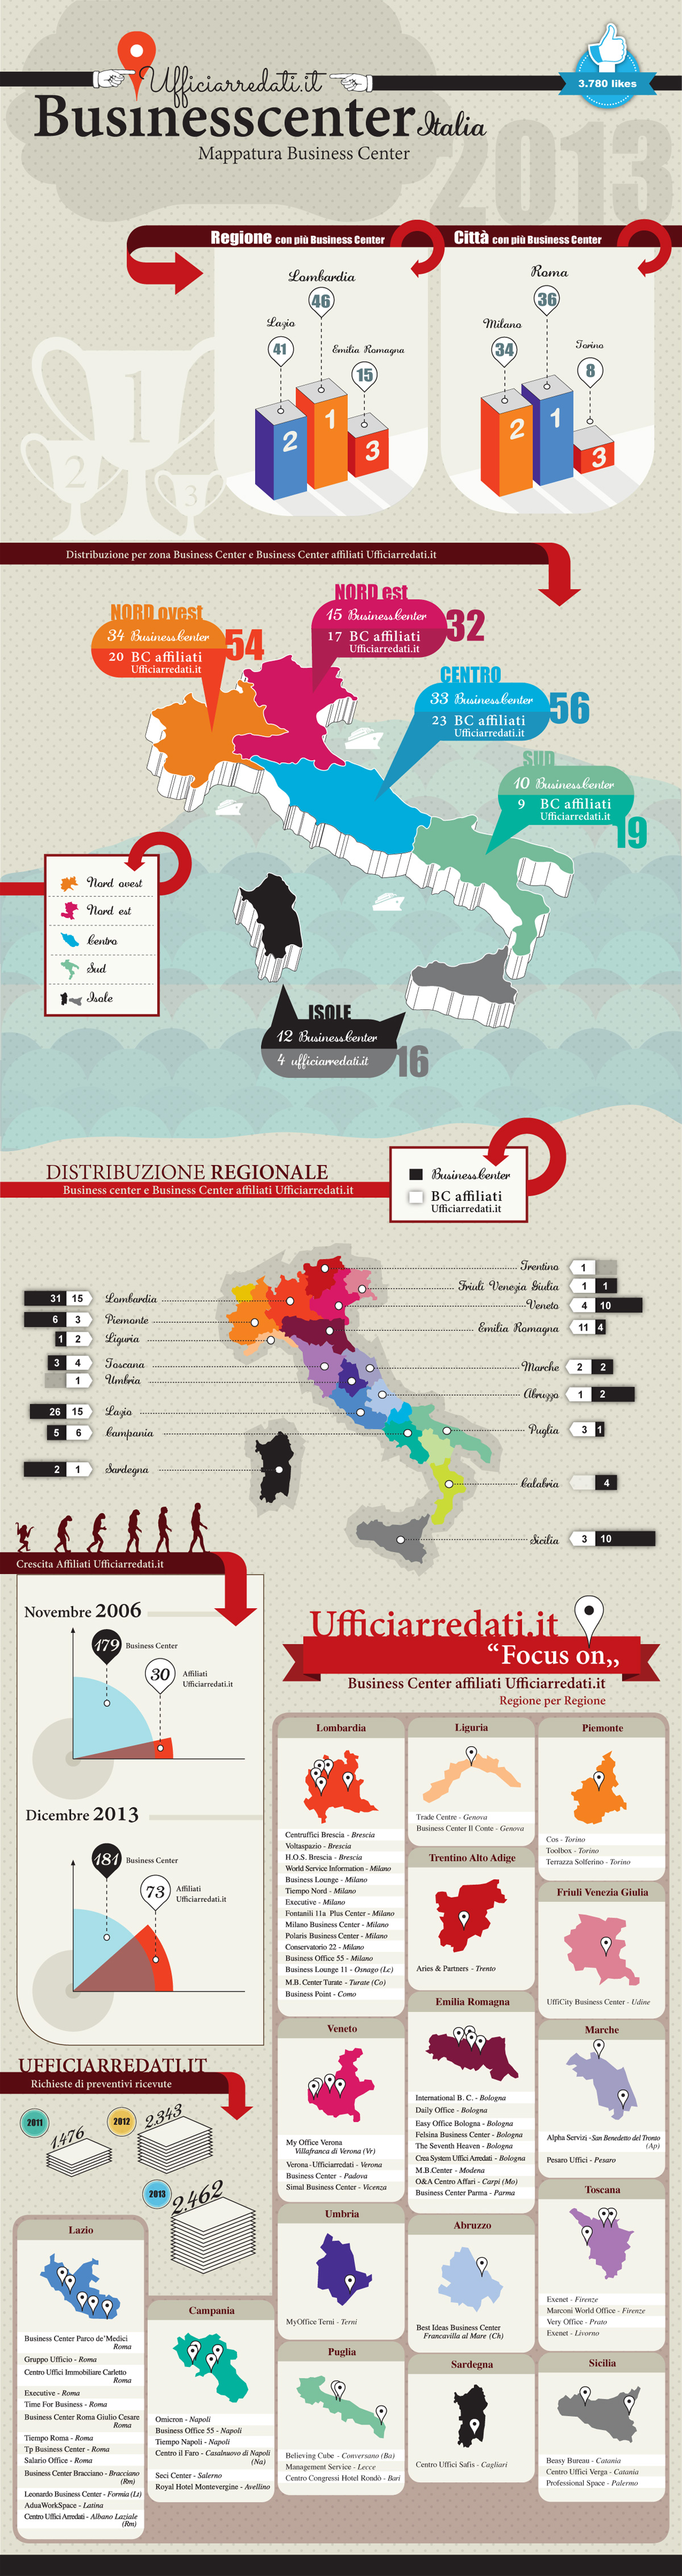 Infografica: i Business Center in Italia